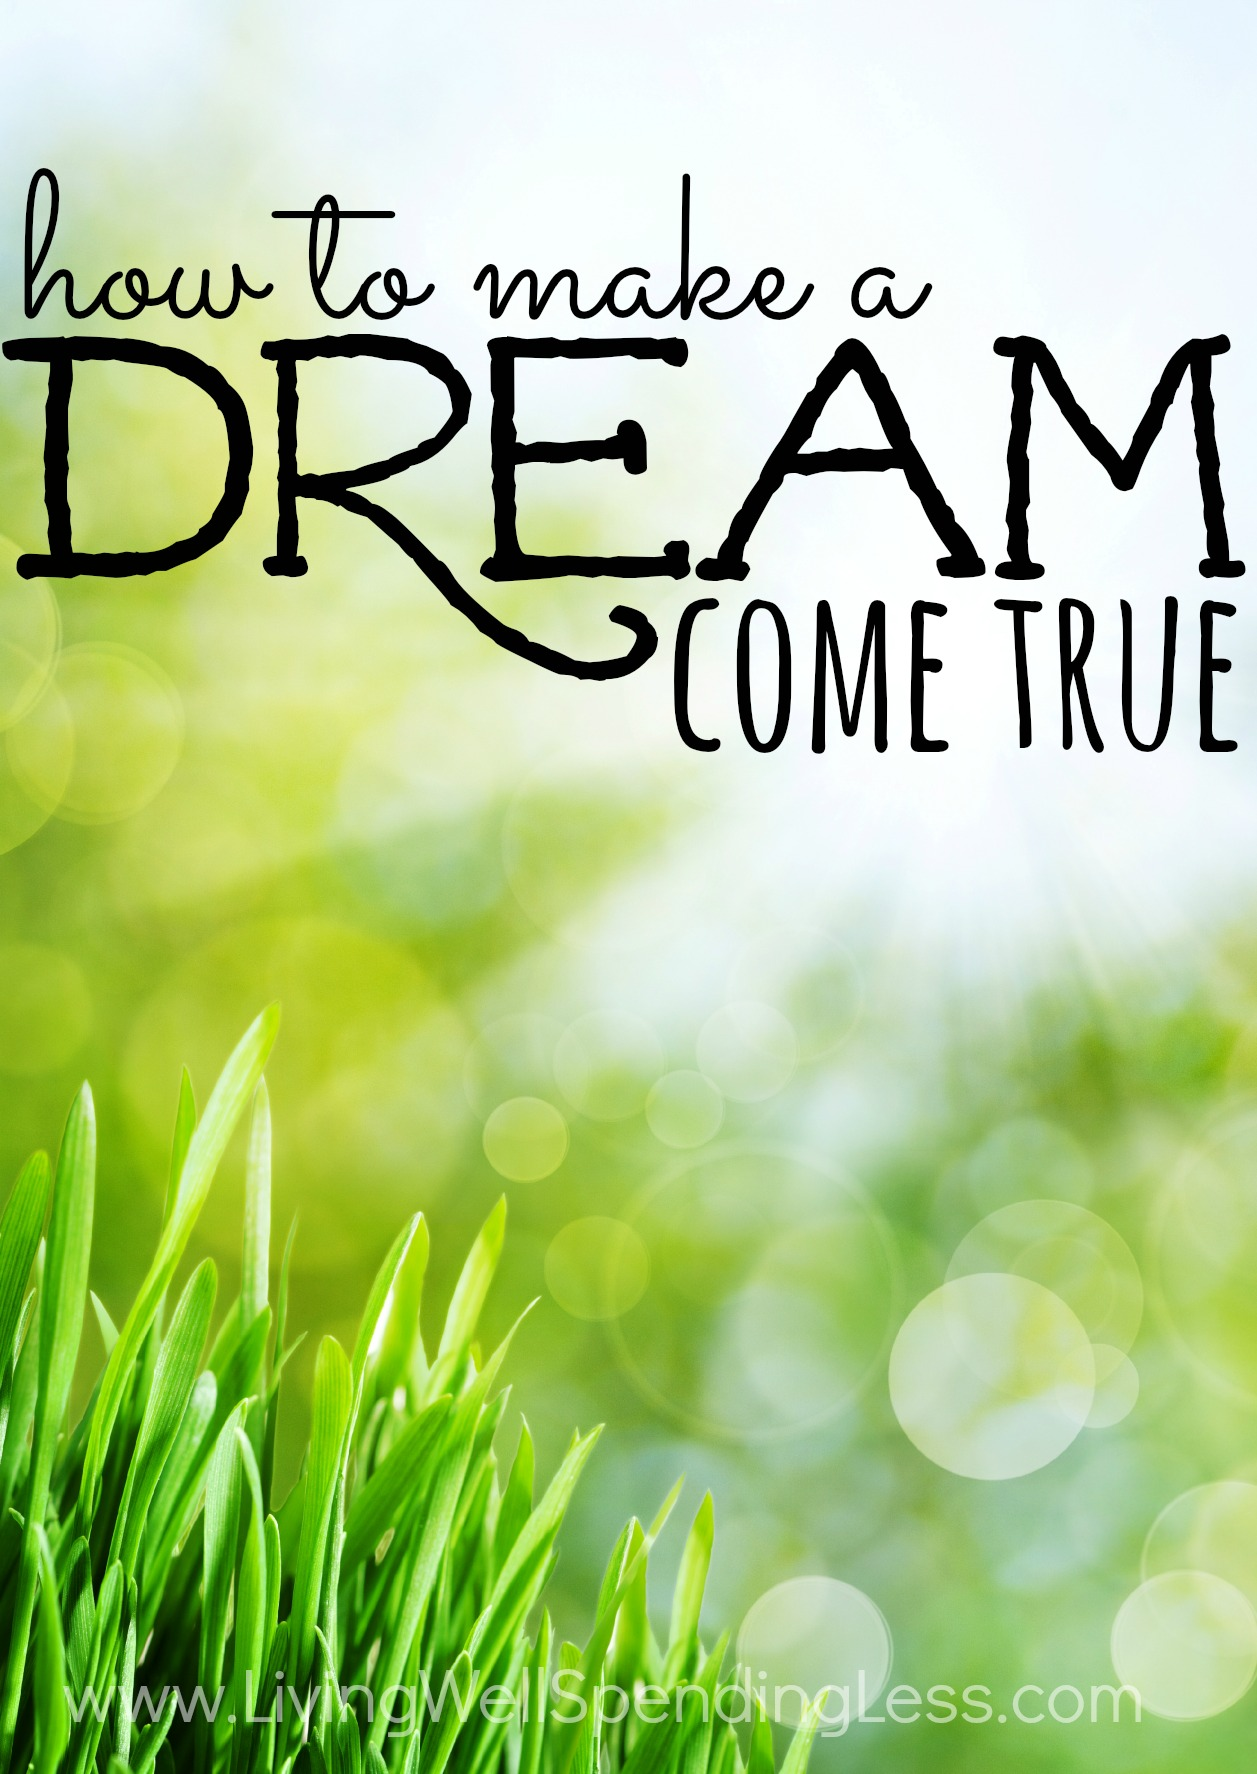 The bigger your dream, the less likely it is that other people will understand it, and the more likely that they will criticize or mock you or tell you it is impossible. If you want to make a dream come true, you have to believe in yourself.